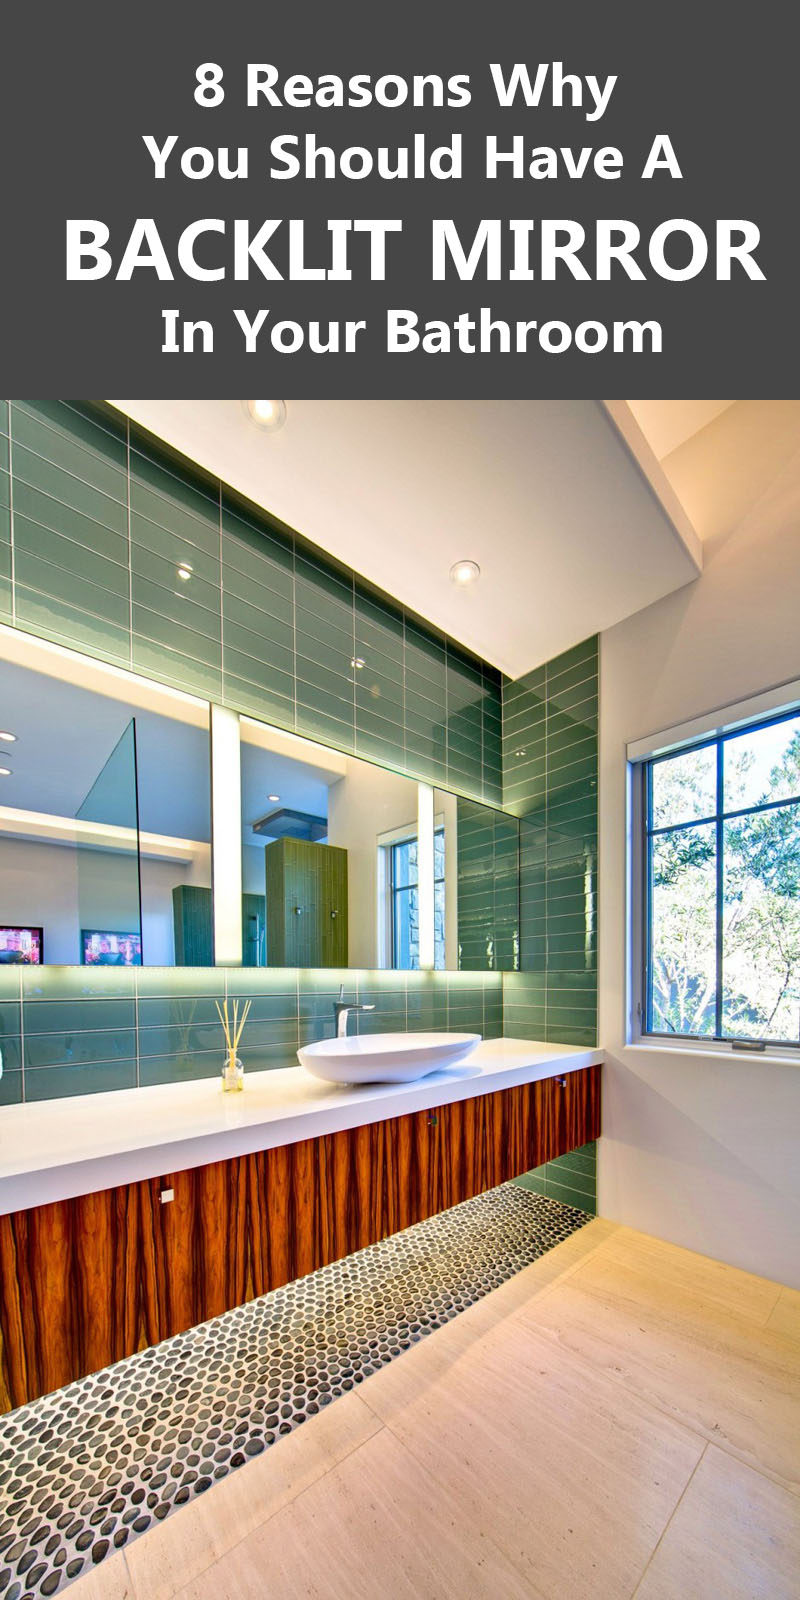 8 Reasons Why You Should Have A Backlit Mirror In Your Bathroom